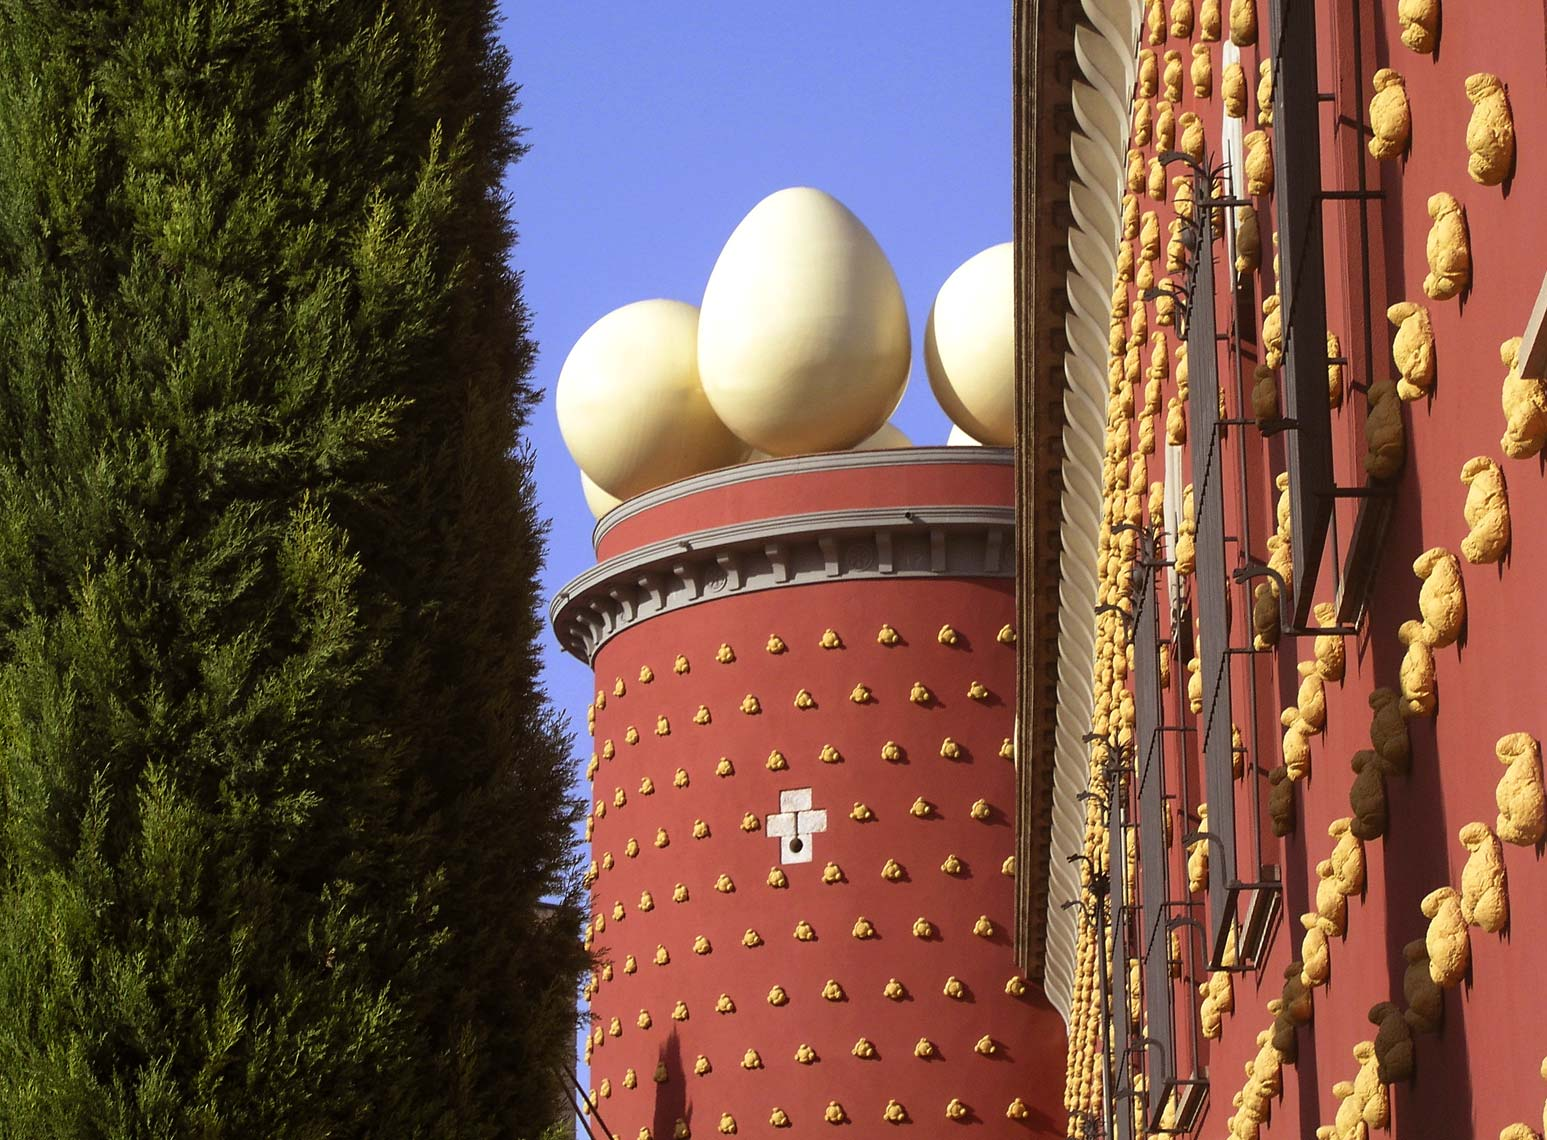 Dali Museum, Figueres Spain